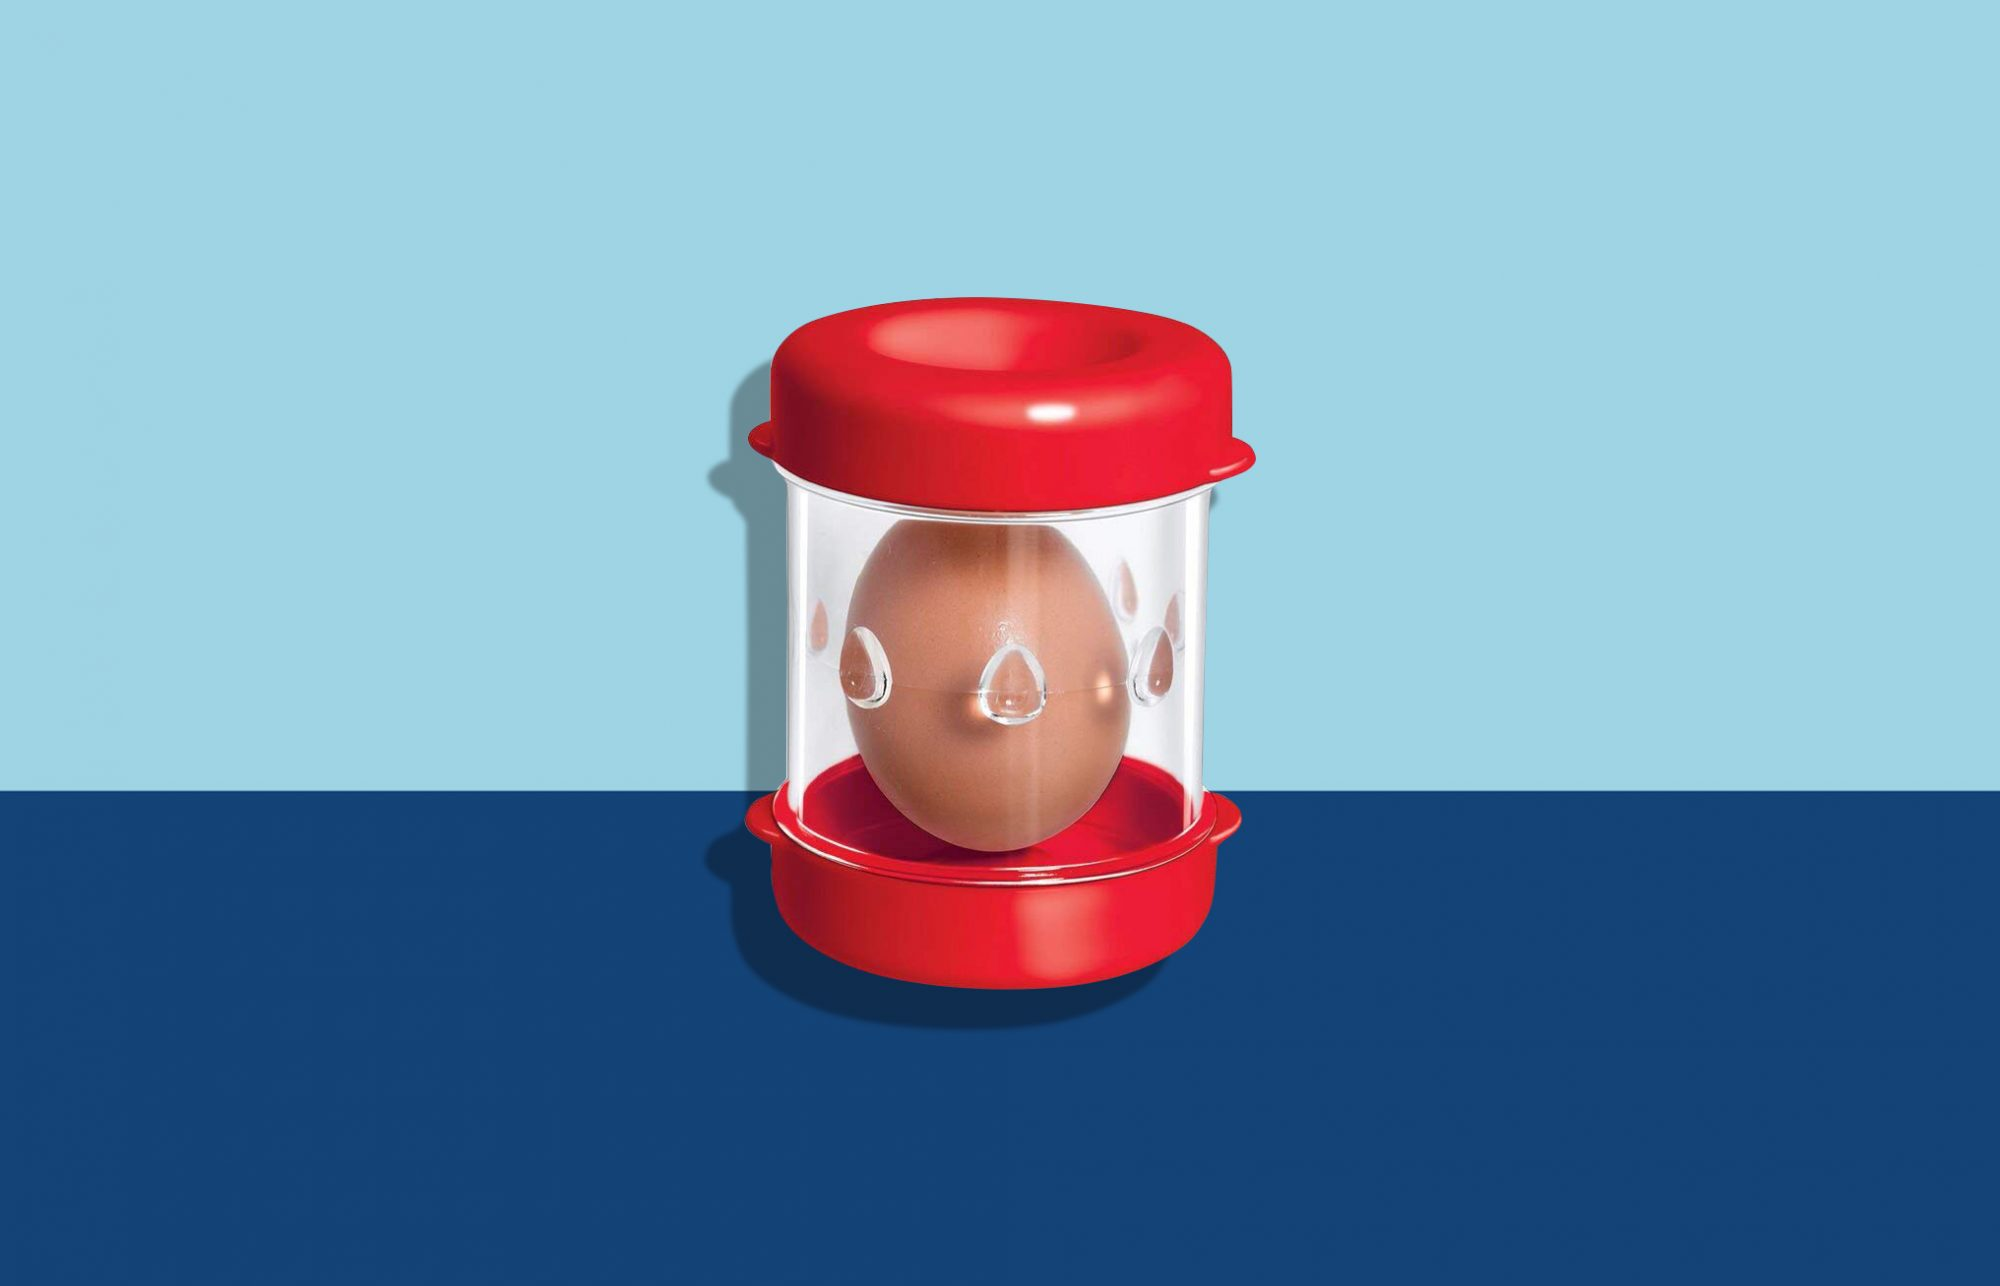 Cool Gadgets on Amazon, Negg Boiled Egg Peeler